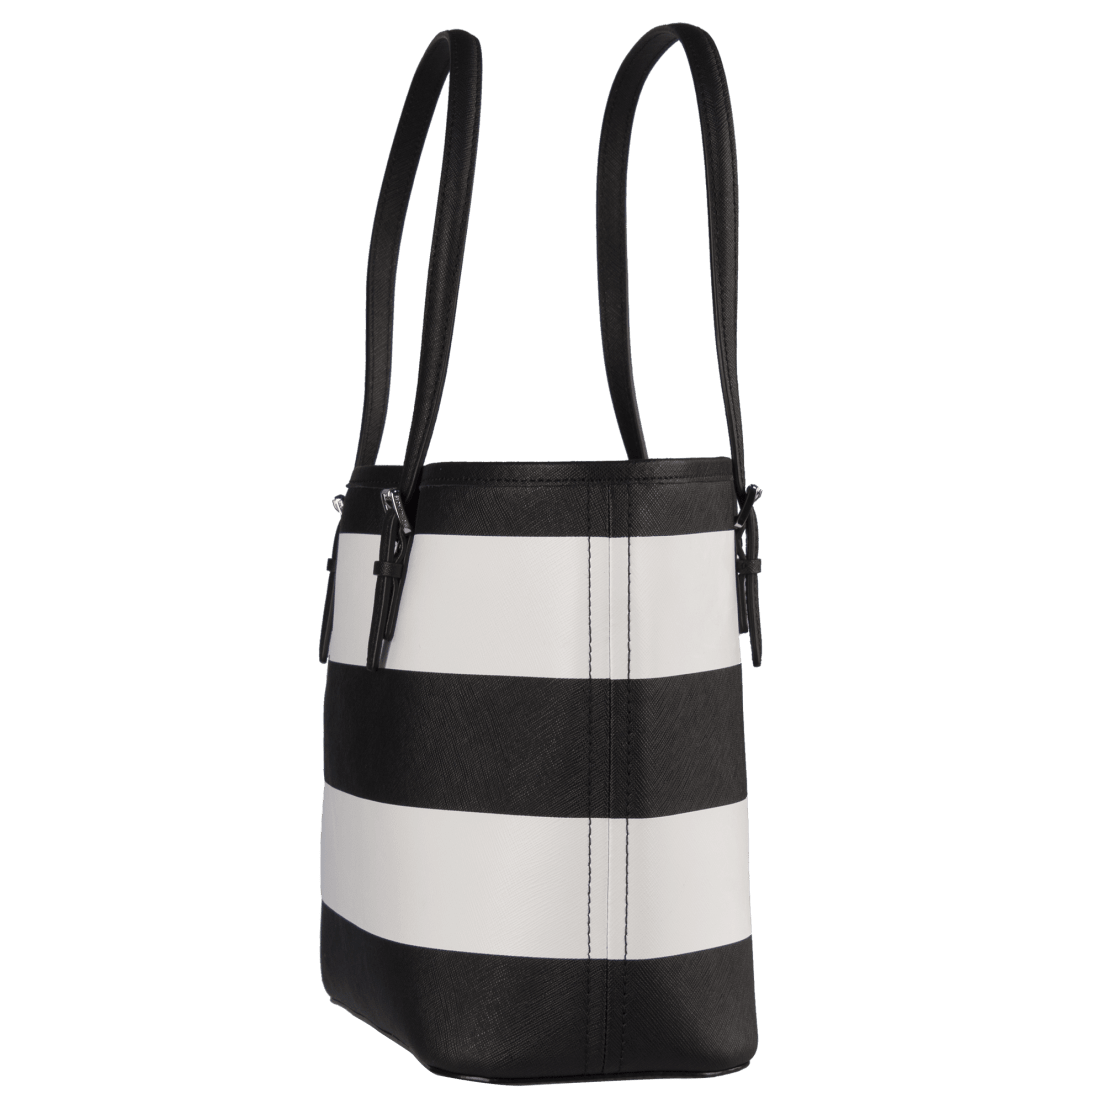 b41a5b8ab056f1 ... Michael Kors Jet Set Travel Small Saffiano Leather Top-Zip Tote in Black  & White. Too late